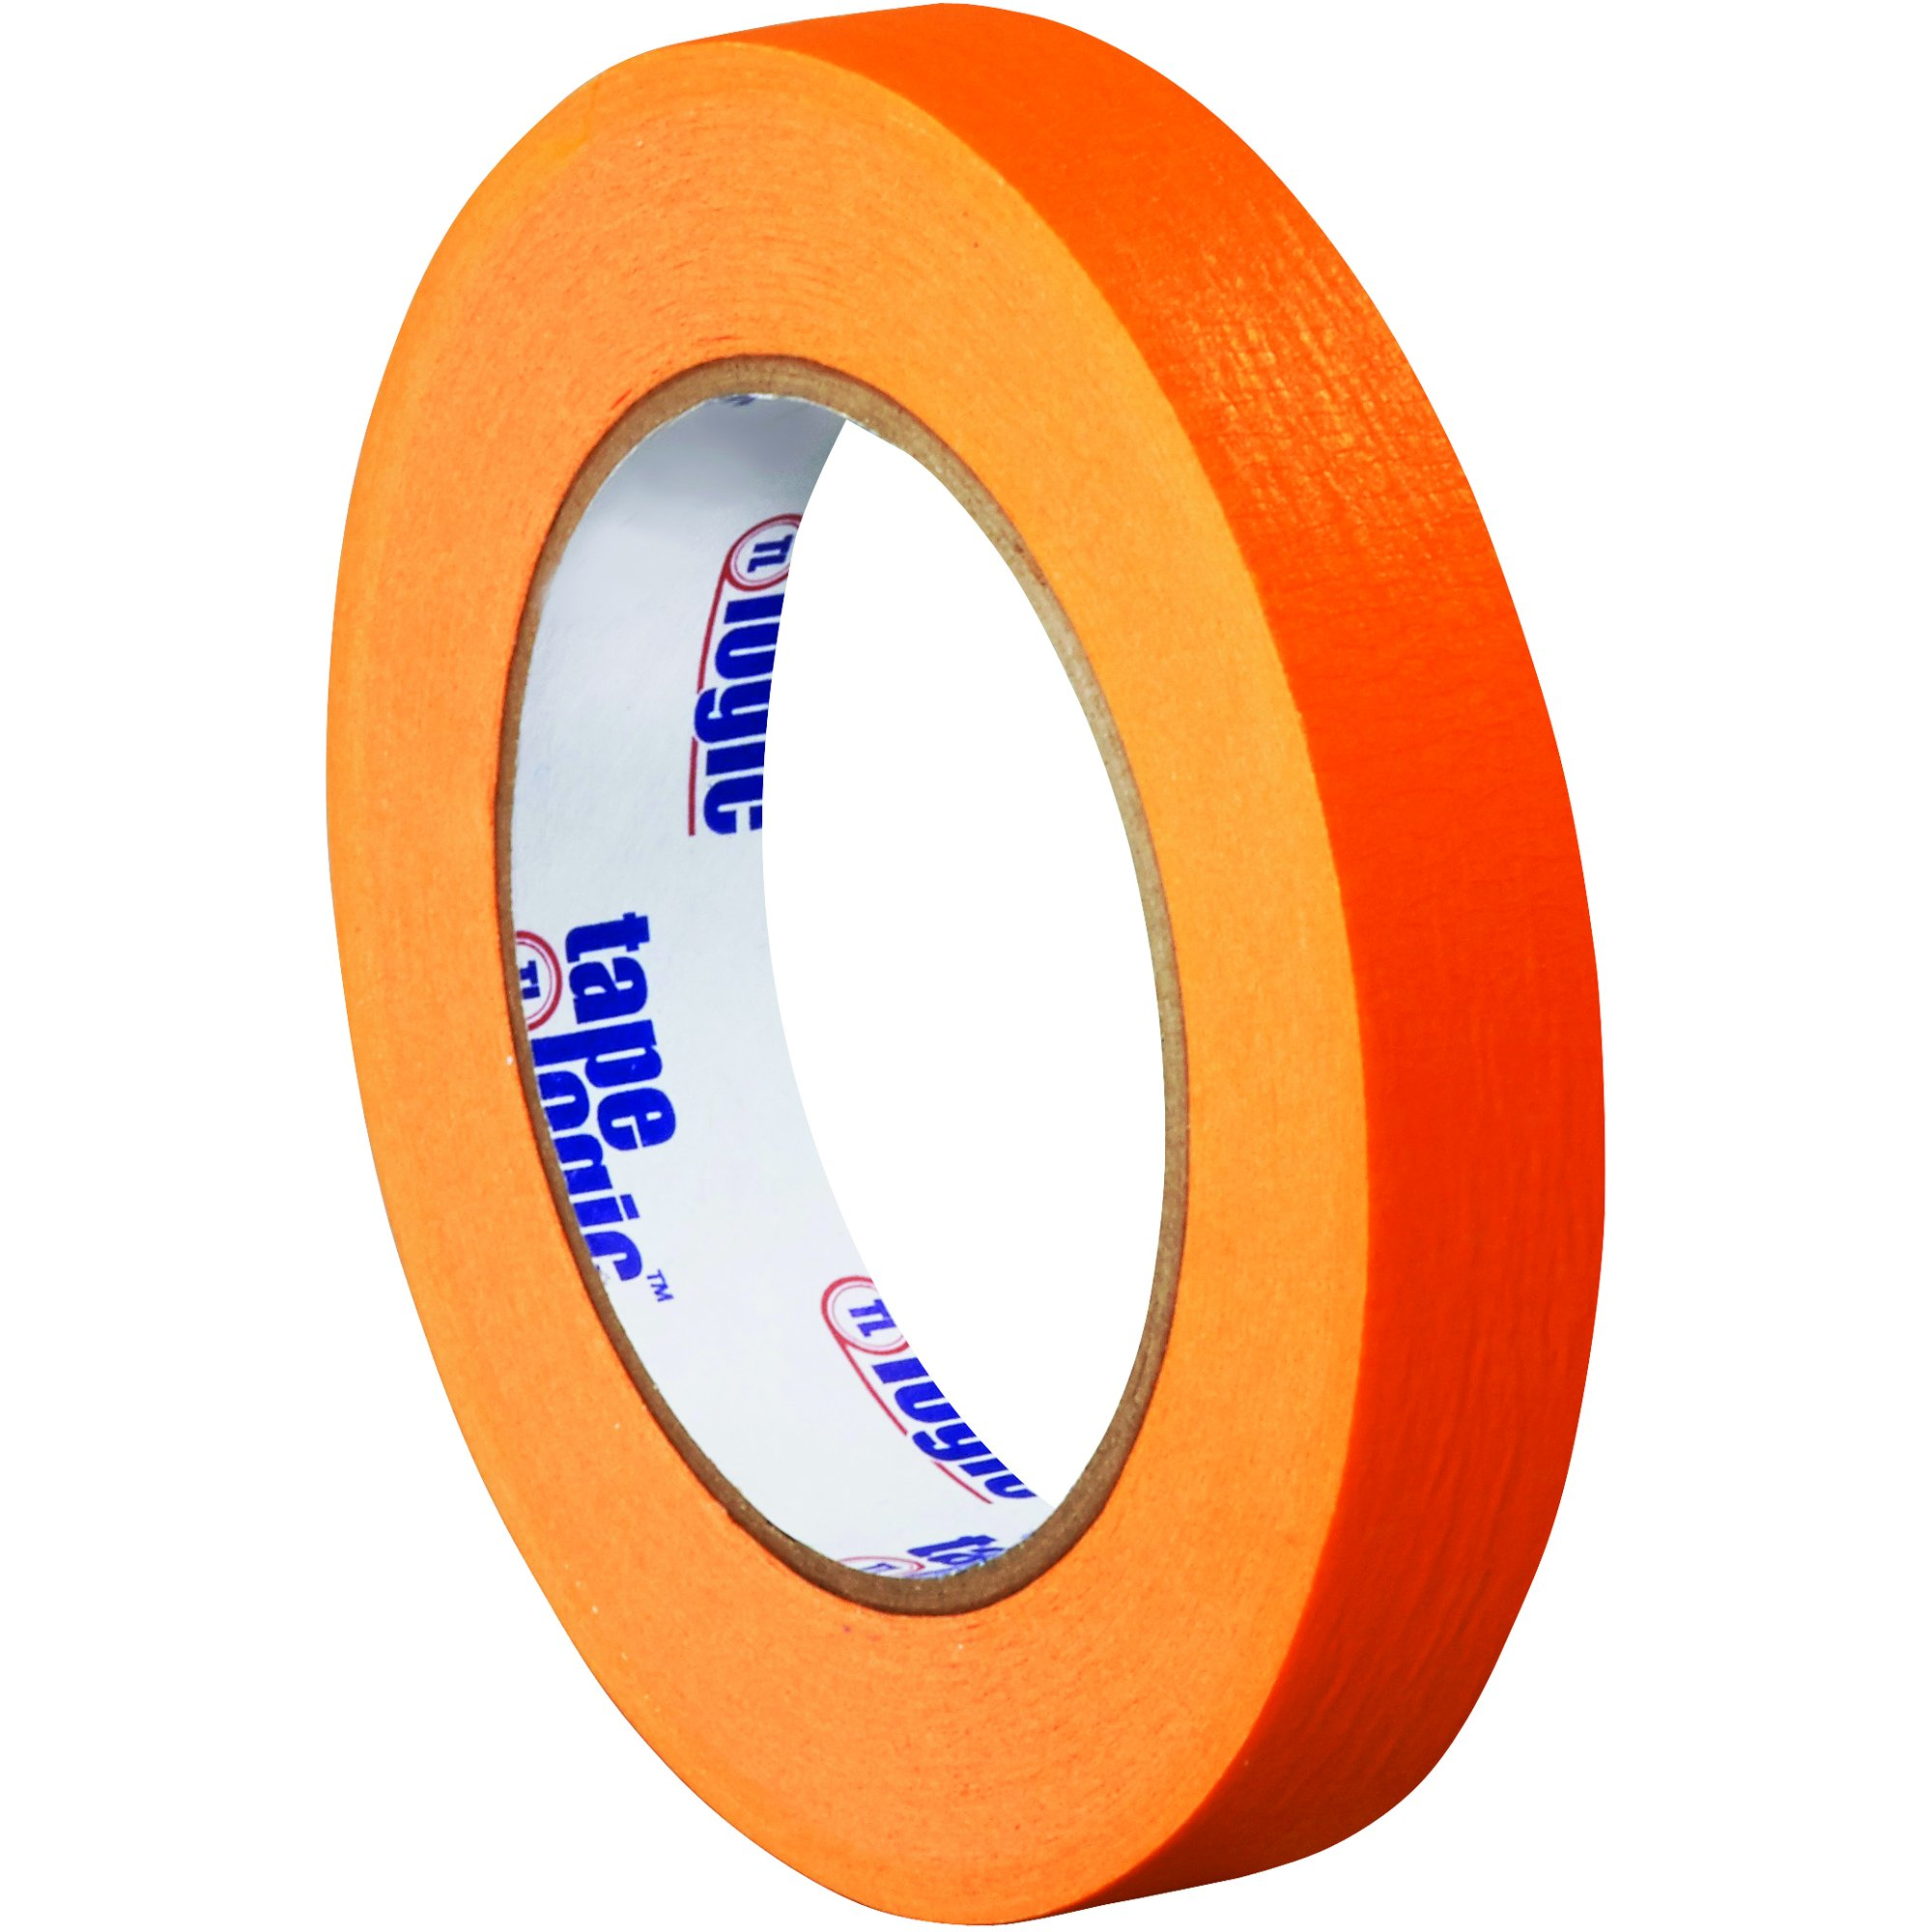 BOX USA BT934003D Tape Logic Masking Tape, 3/4'' x 60 yd., Orange (Pack of 48)